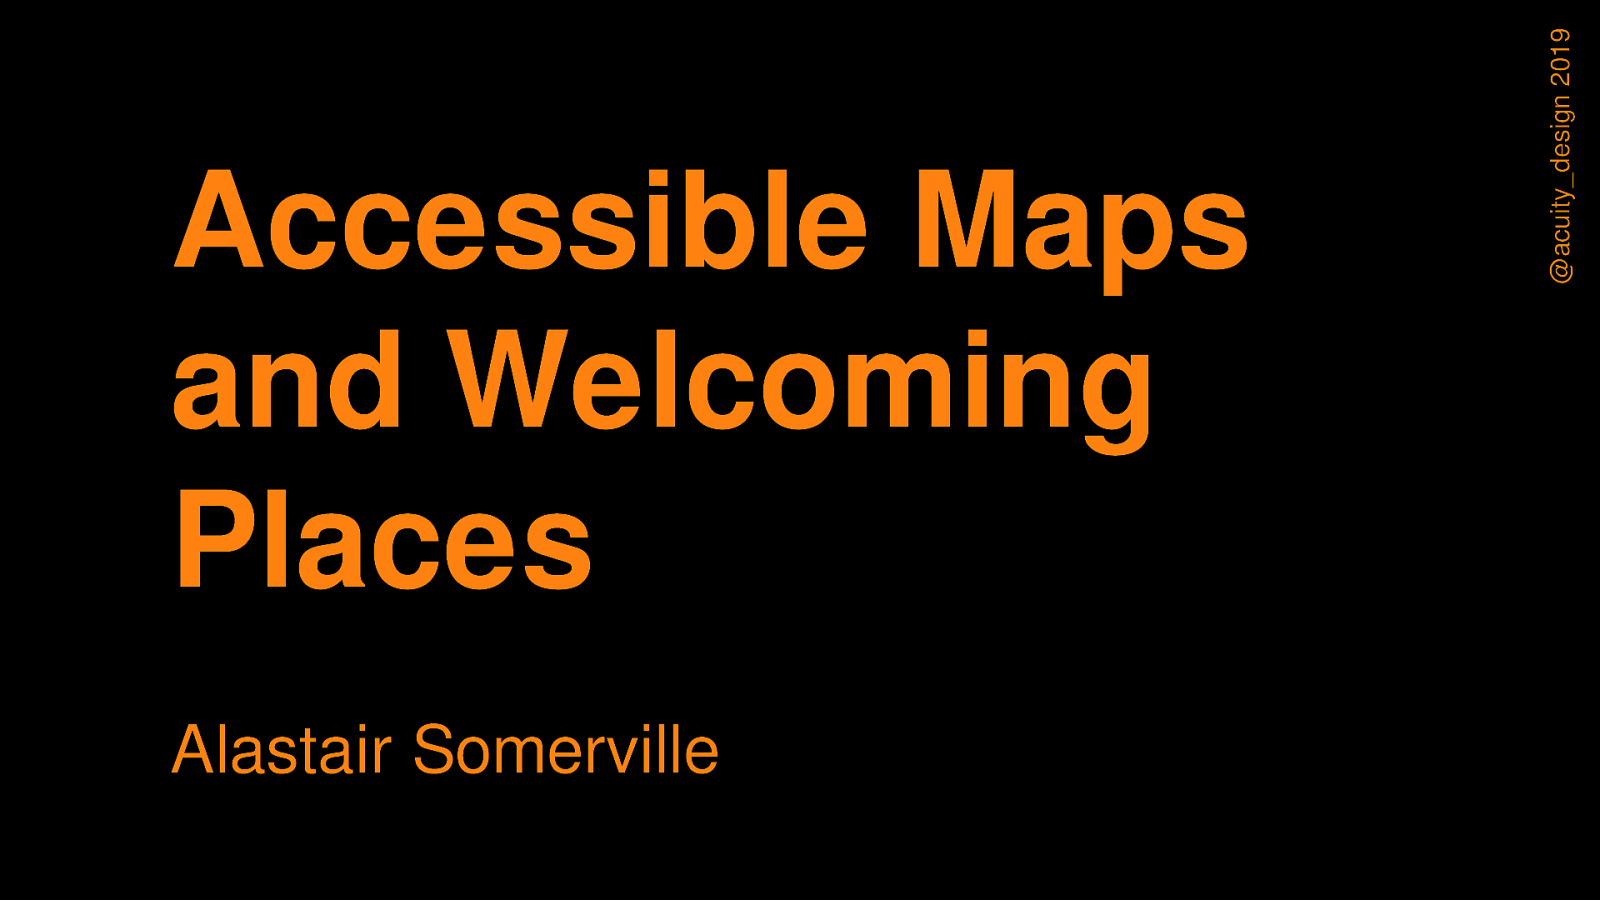 Accessible Maps and Welcoming Places